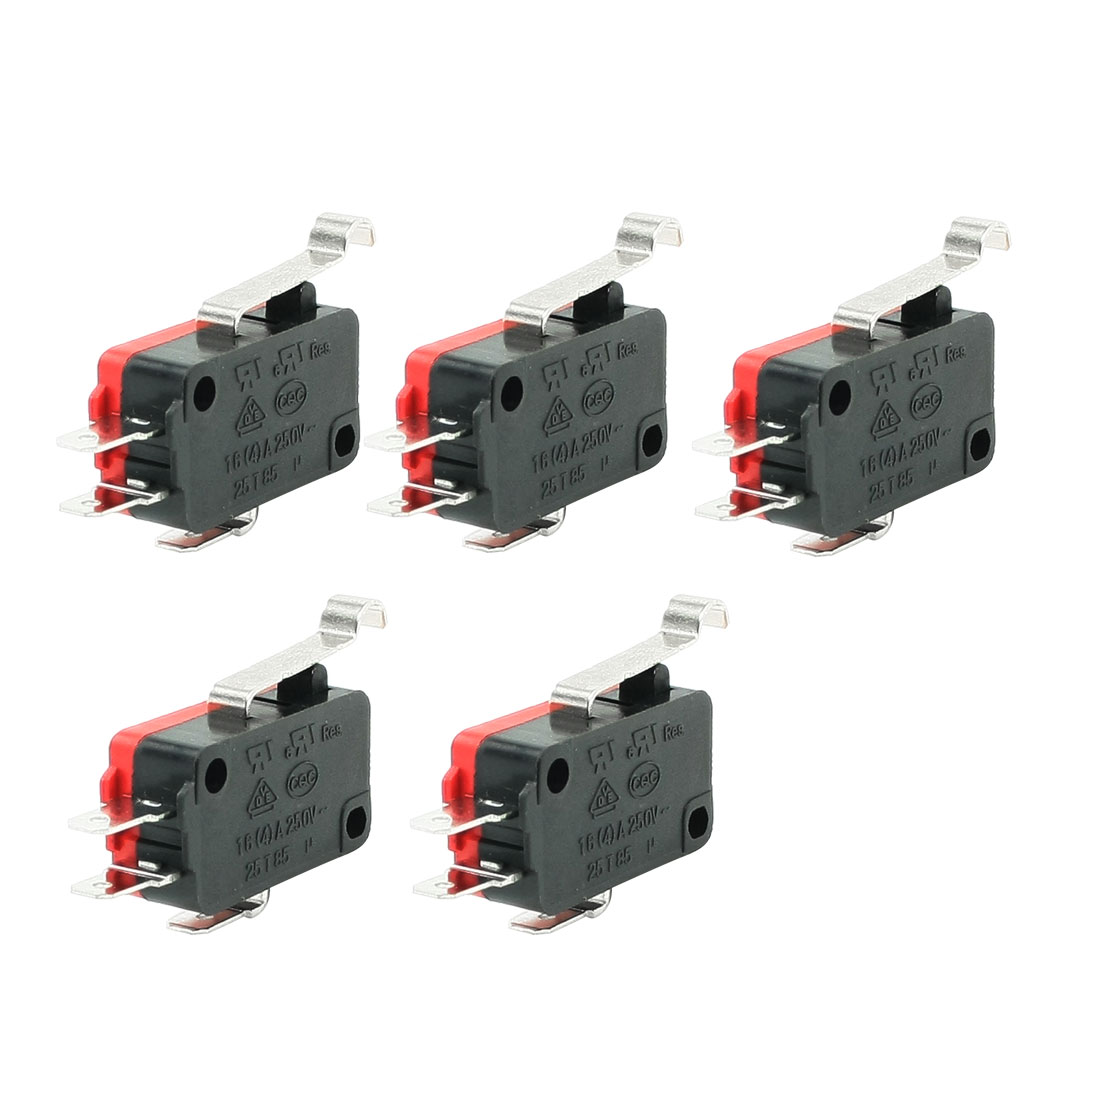 AC 16A/250V 4A/250V Arch End Actuator Limit Micro Switch 5 Pcs